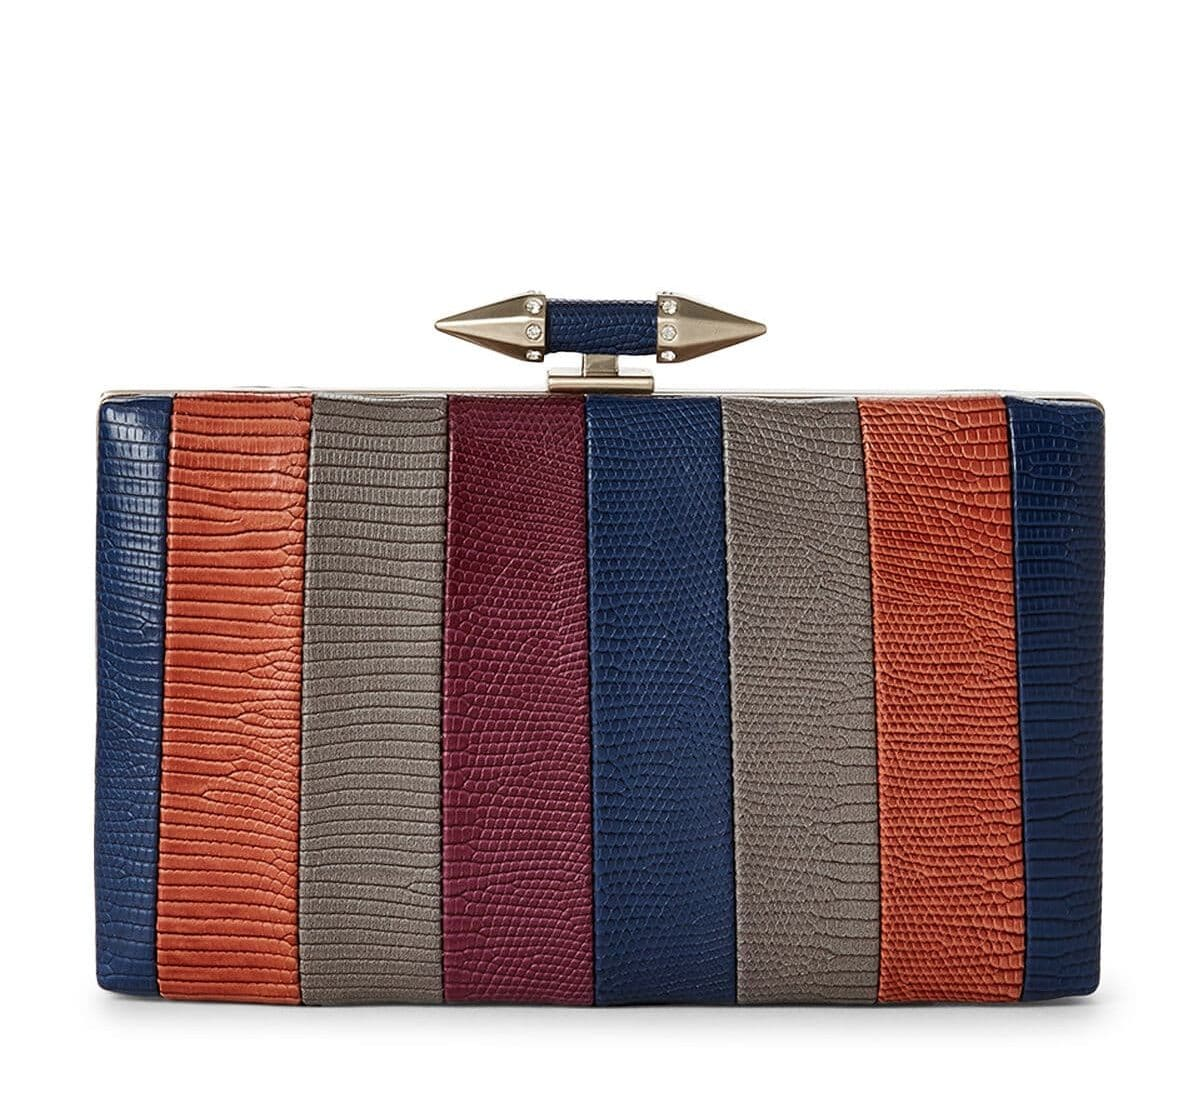 Lala Multi-colored Structured Clutch For Fall Winter Spring Summer